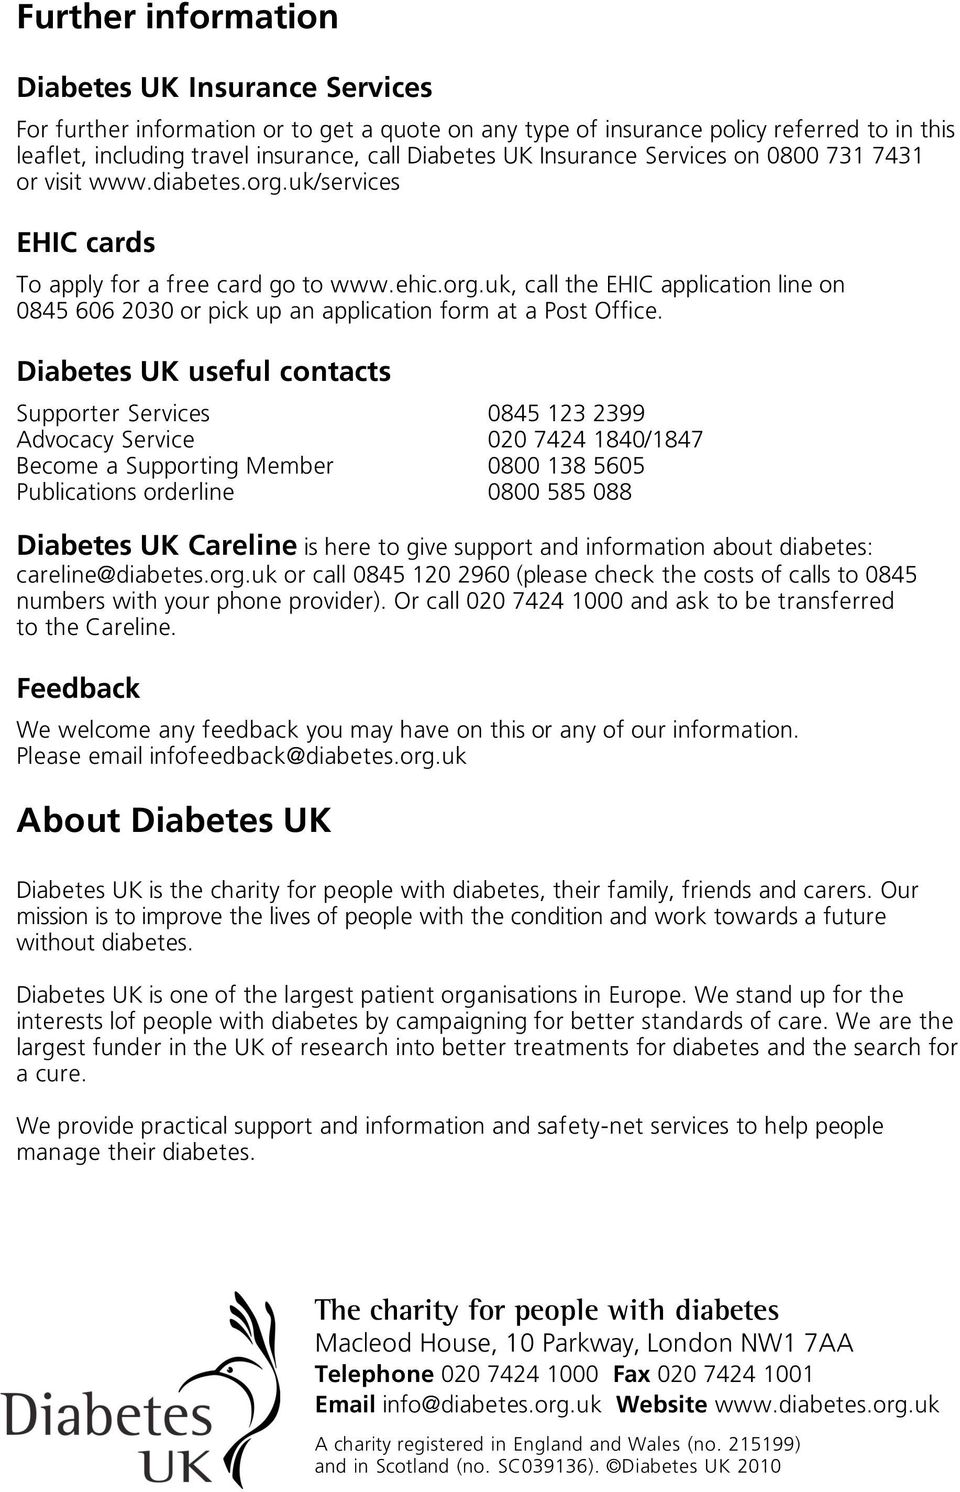 Diabetes UK useful contacts Supporter Services 0845 123 2399 Advocacy Service 020 7424 1840/1847 Become a Supporting Member 0800 138 5605 Publications orderline 0800 585 088 Diabetes UK Careline is